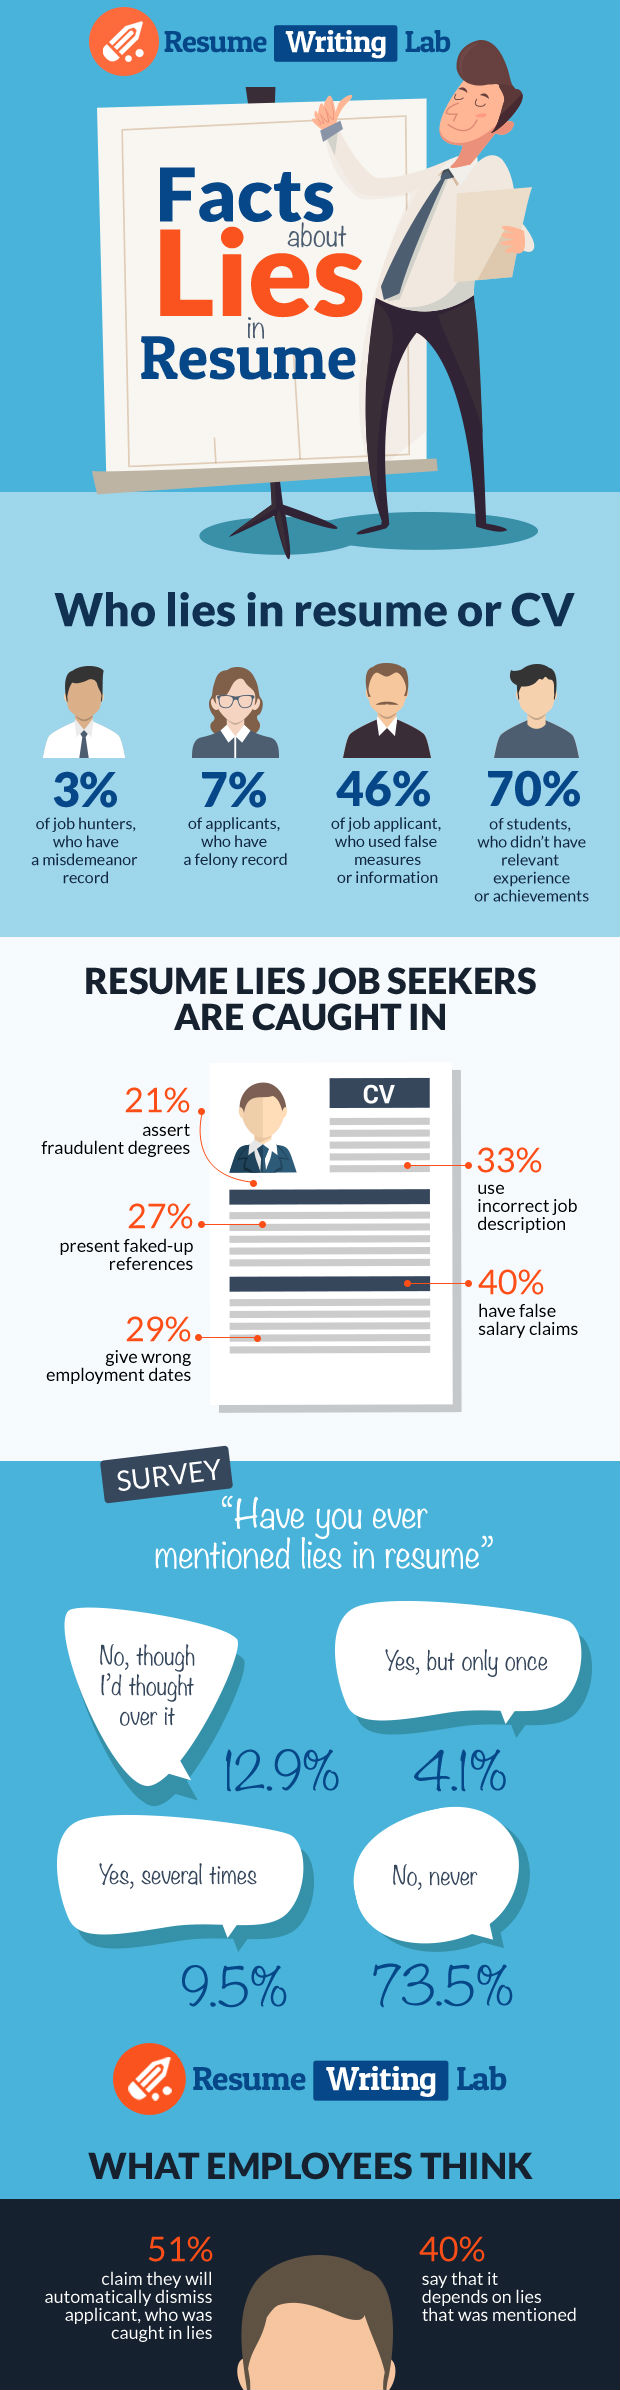 Facts About Lies In Resume [Infographic]